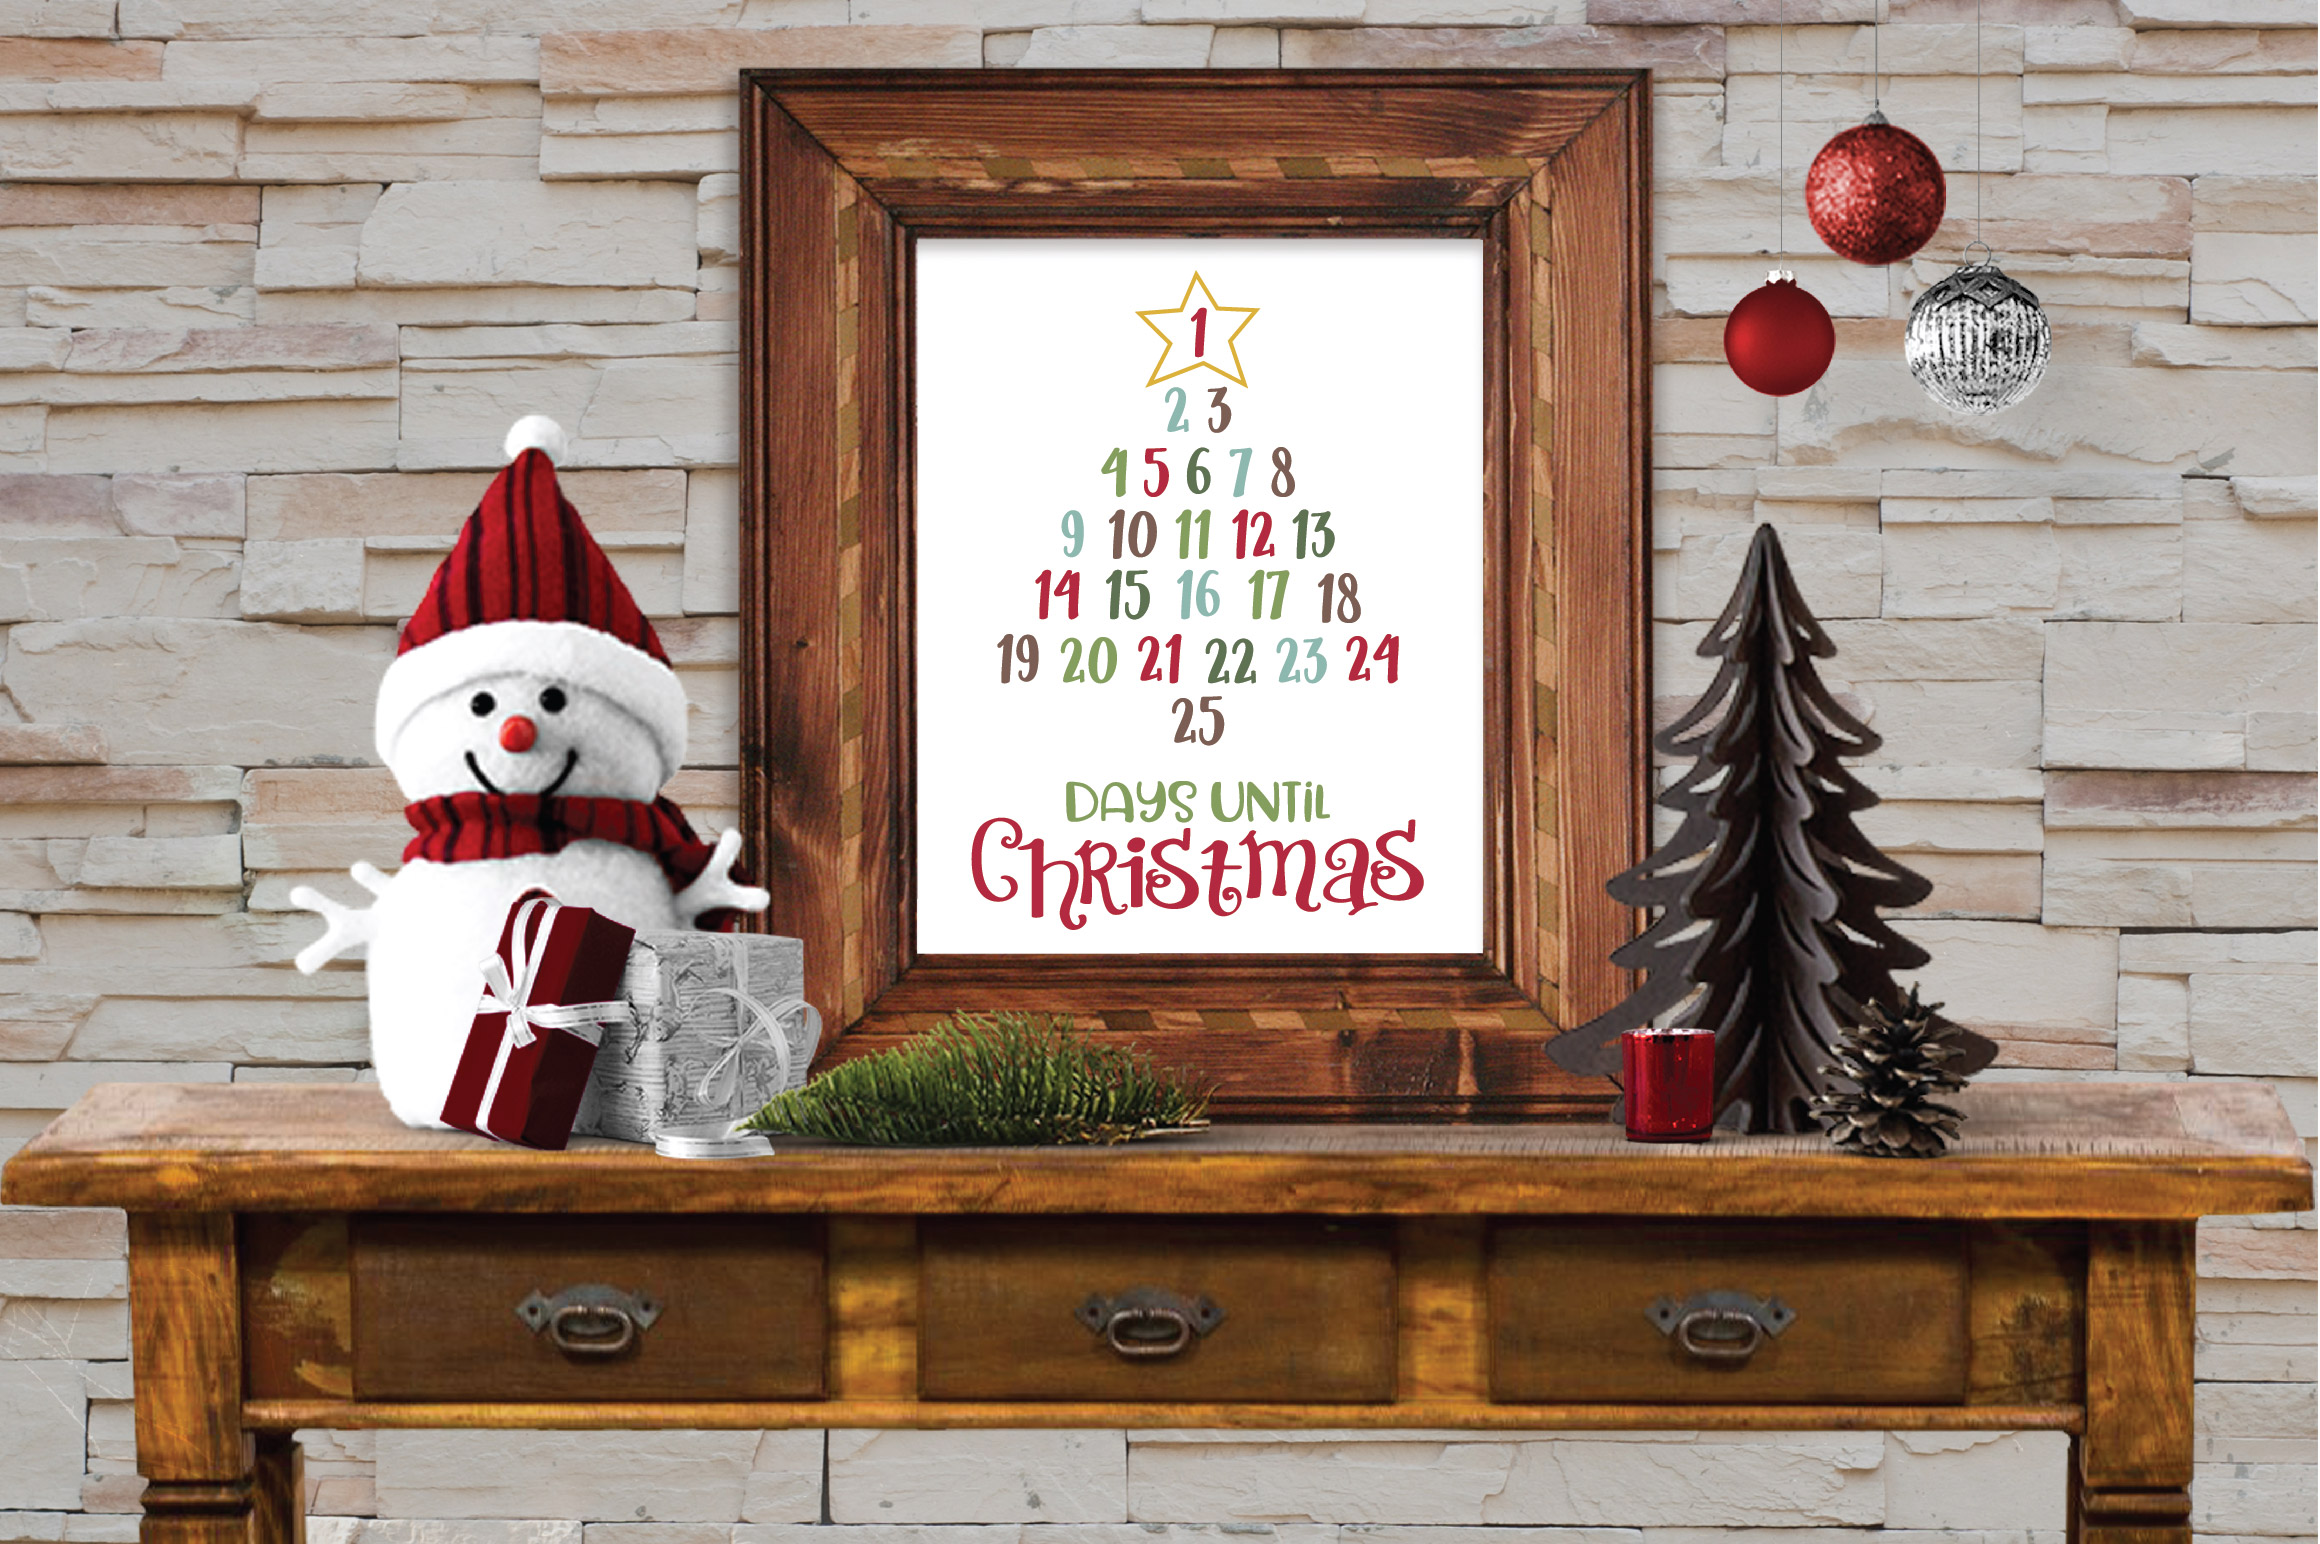 Christmas SVG Bundle with 10 Christmas Countdown Cut Files example image 6